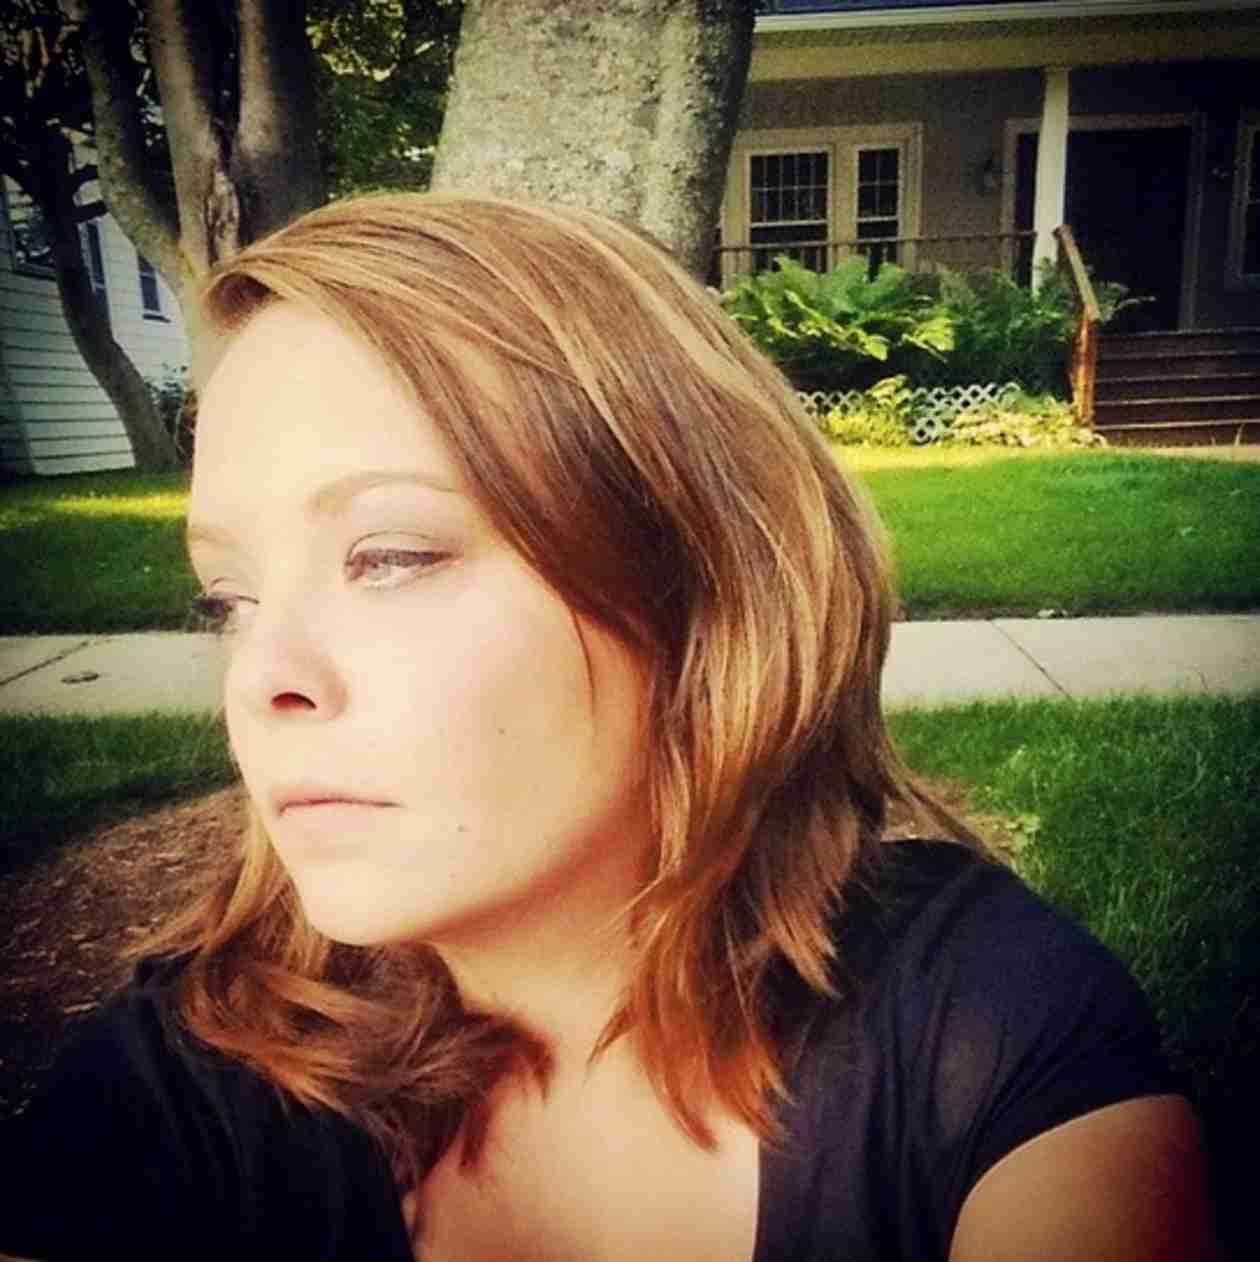 Catelynn Lowell Reveals Struggle with Anxiety and Depression